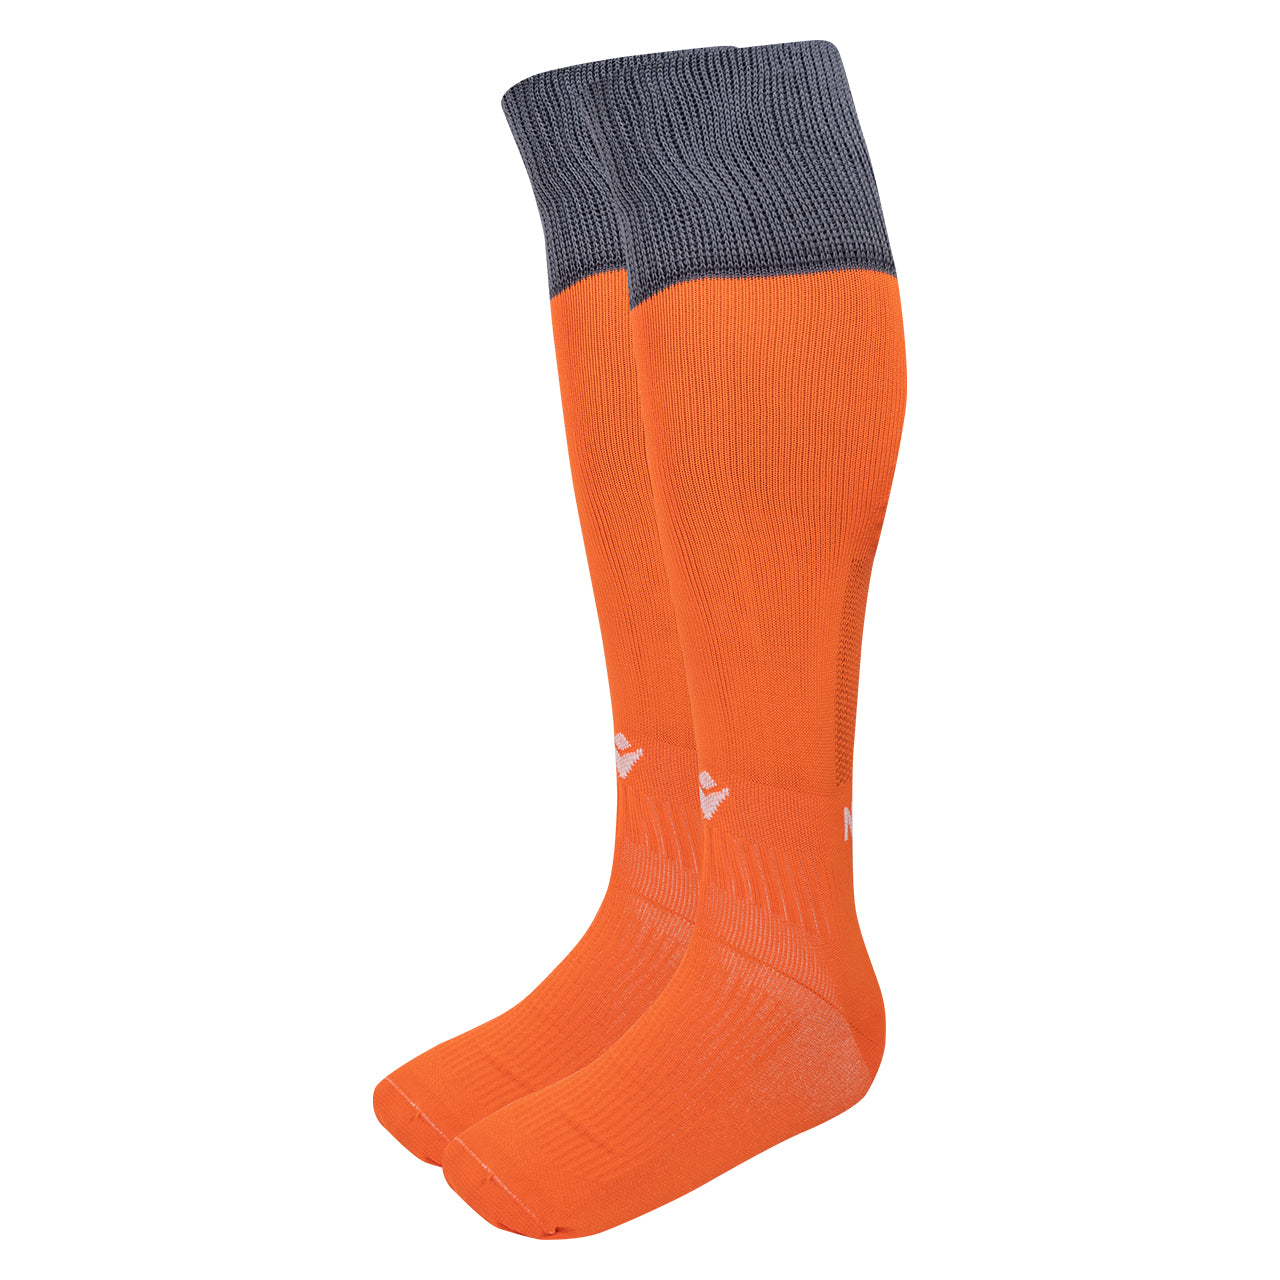 NFFC Junior Orange Goalkeeper Socks 2020/21